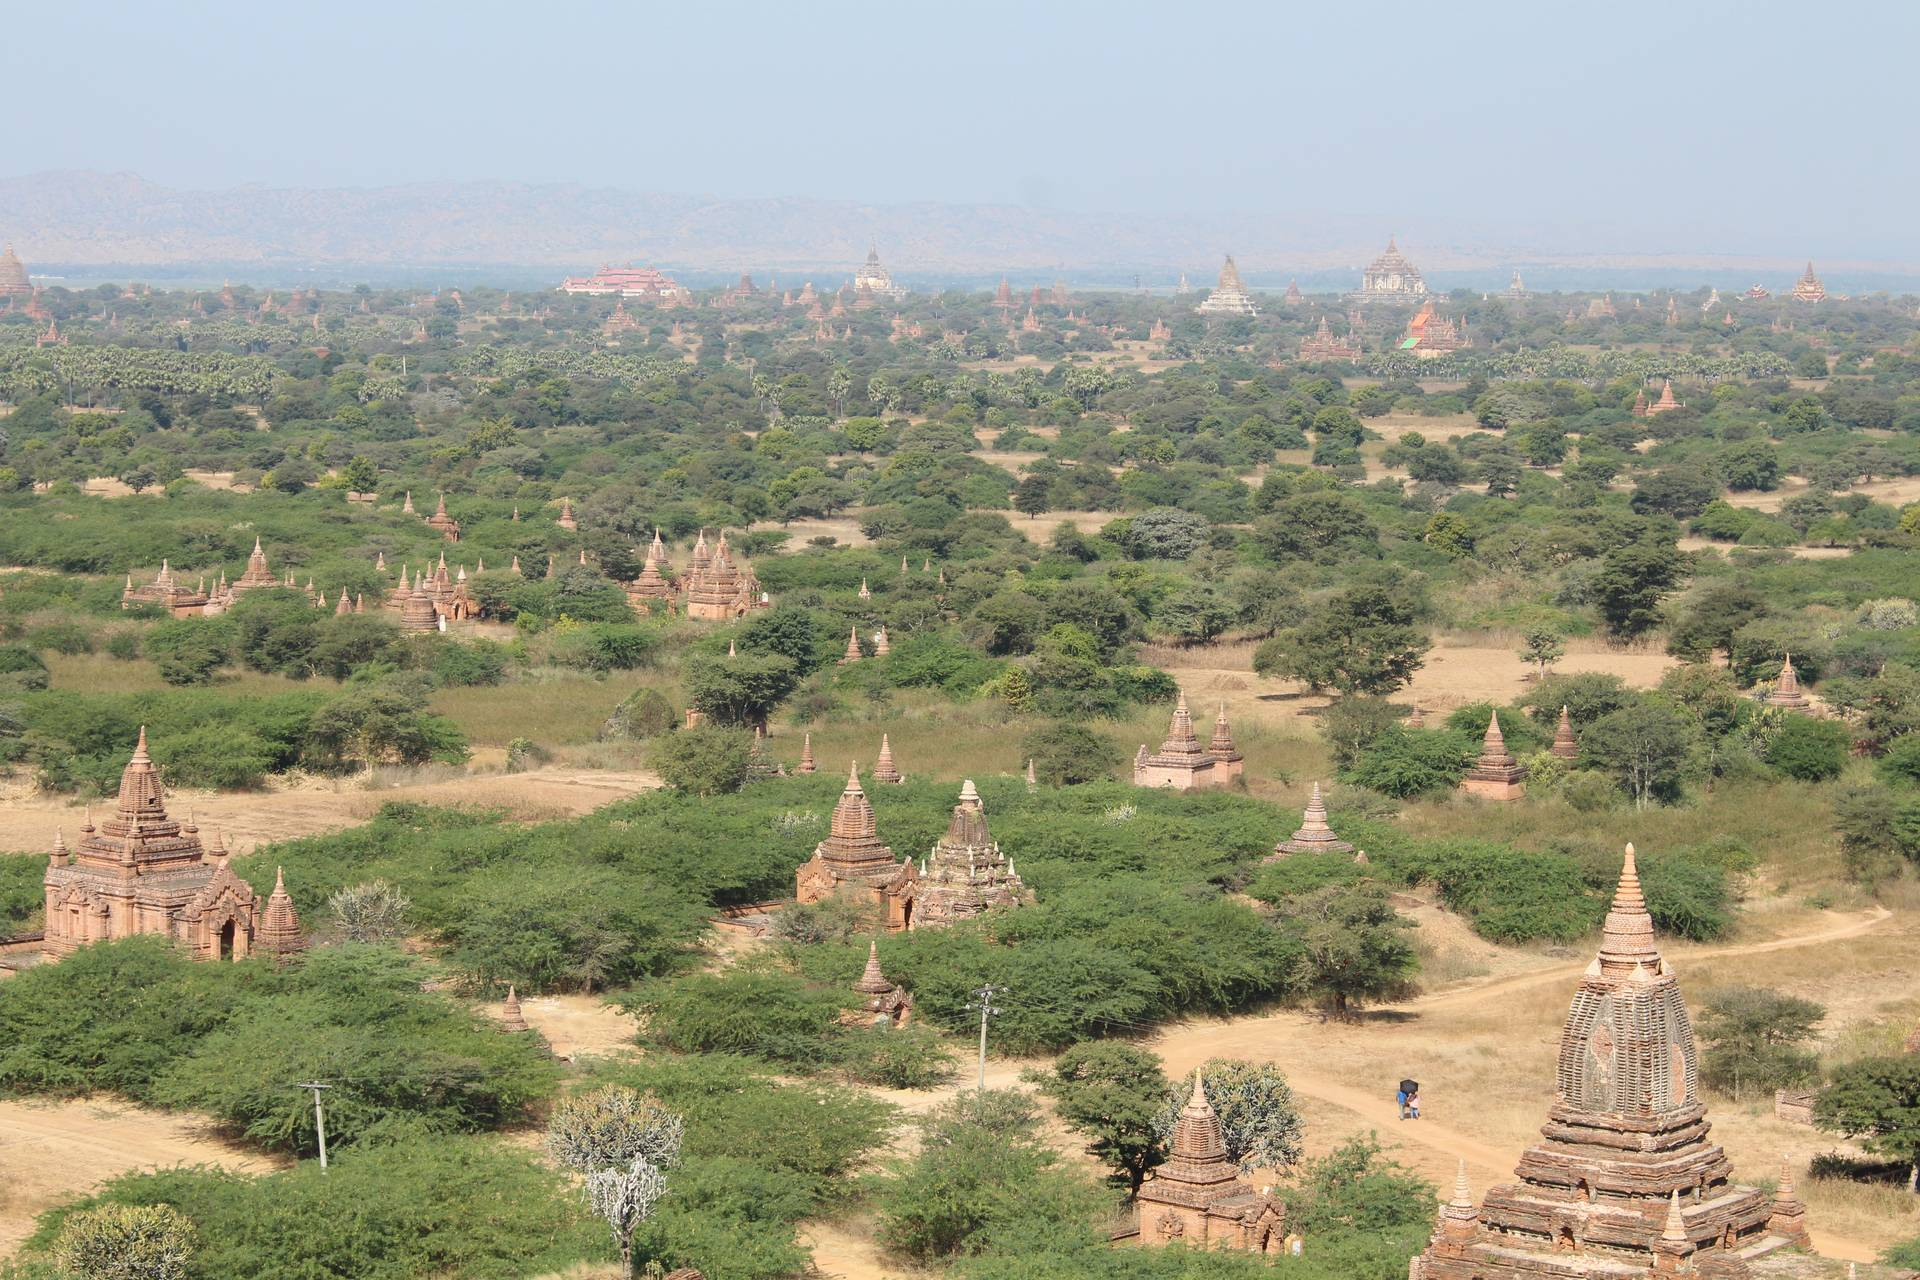 Once there were 10 000 temples and pagodas across the Bagan plain, which were built between the ninth and 13th centuries to honour the deities. Now there are only 2 800, but it's still ranked as one of the world's most remarkable archaeological sites.